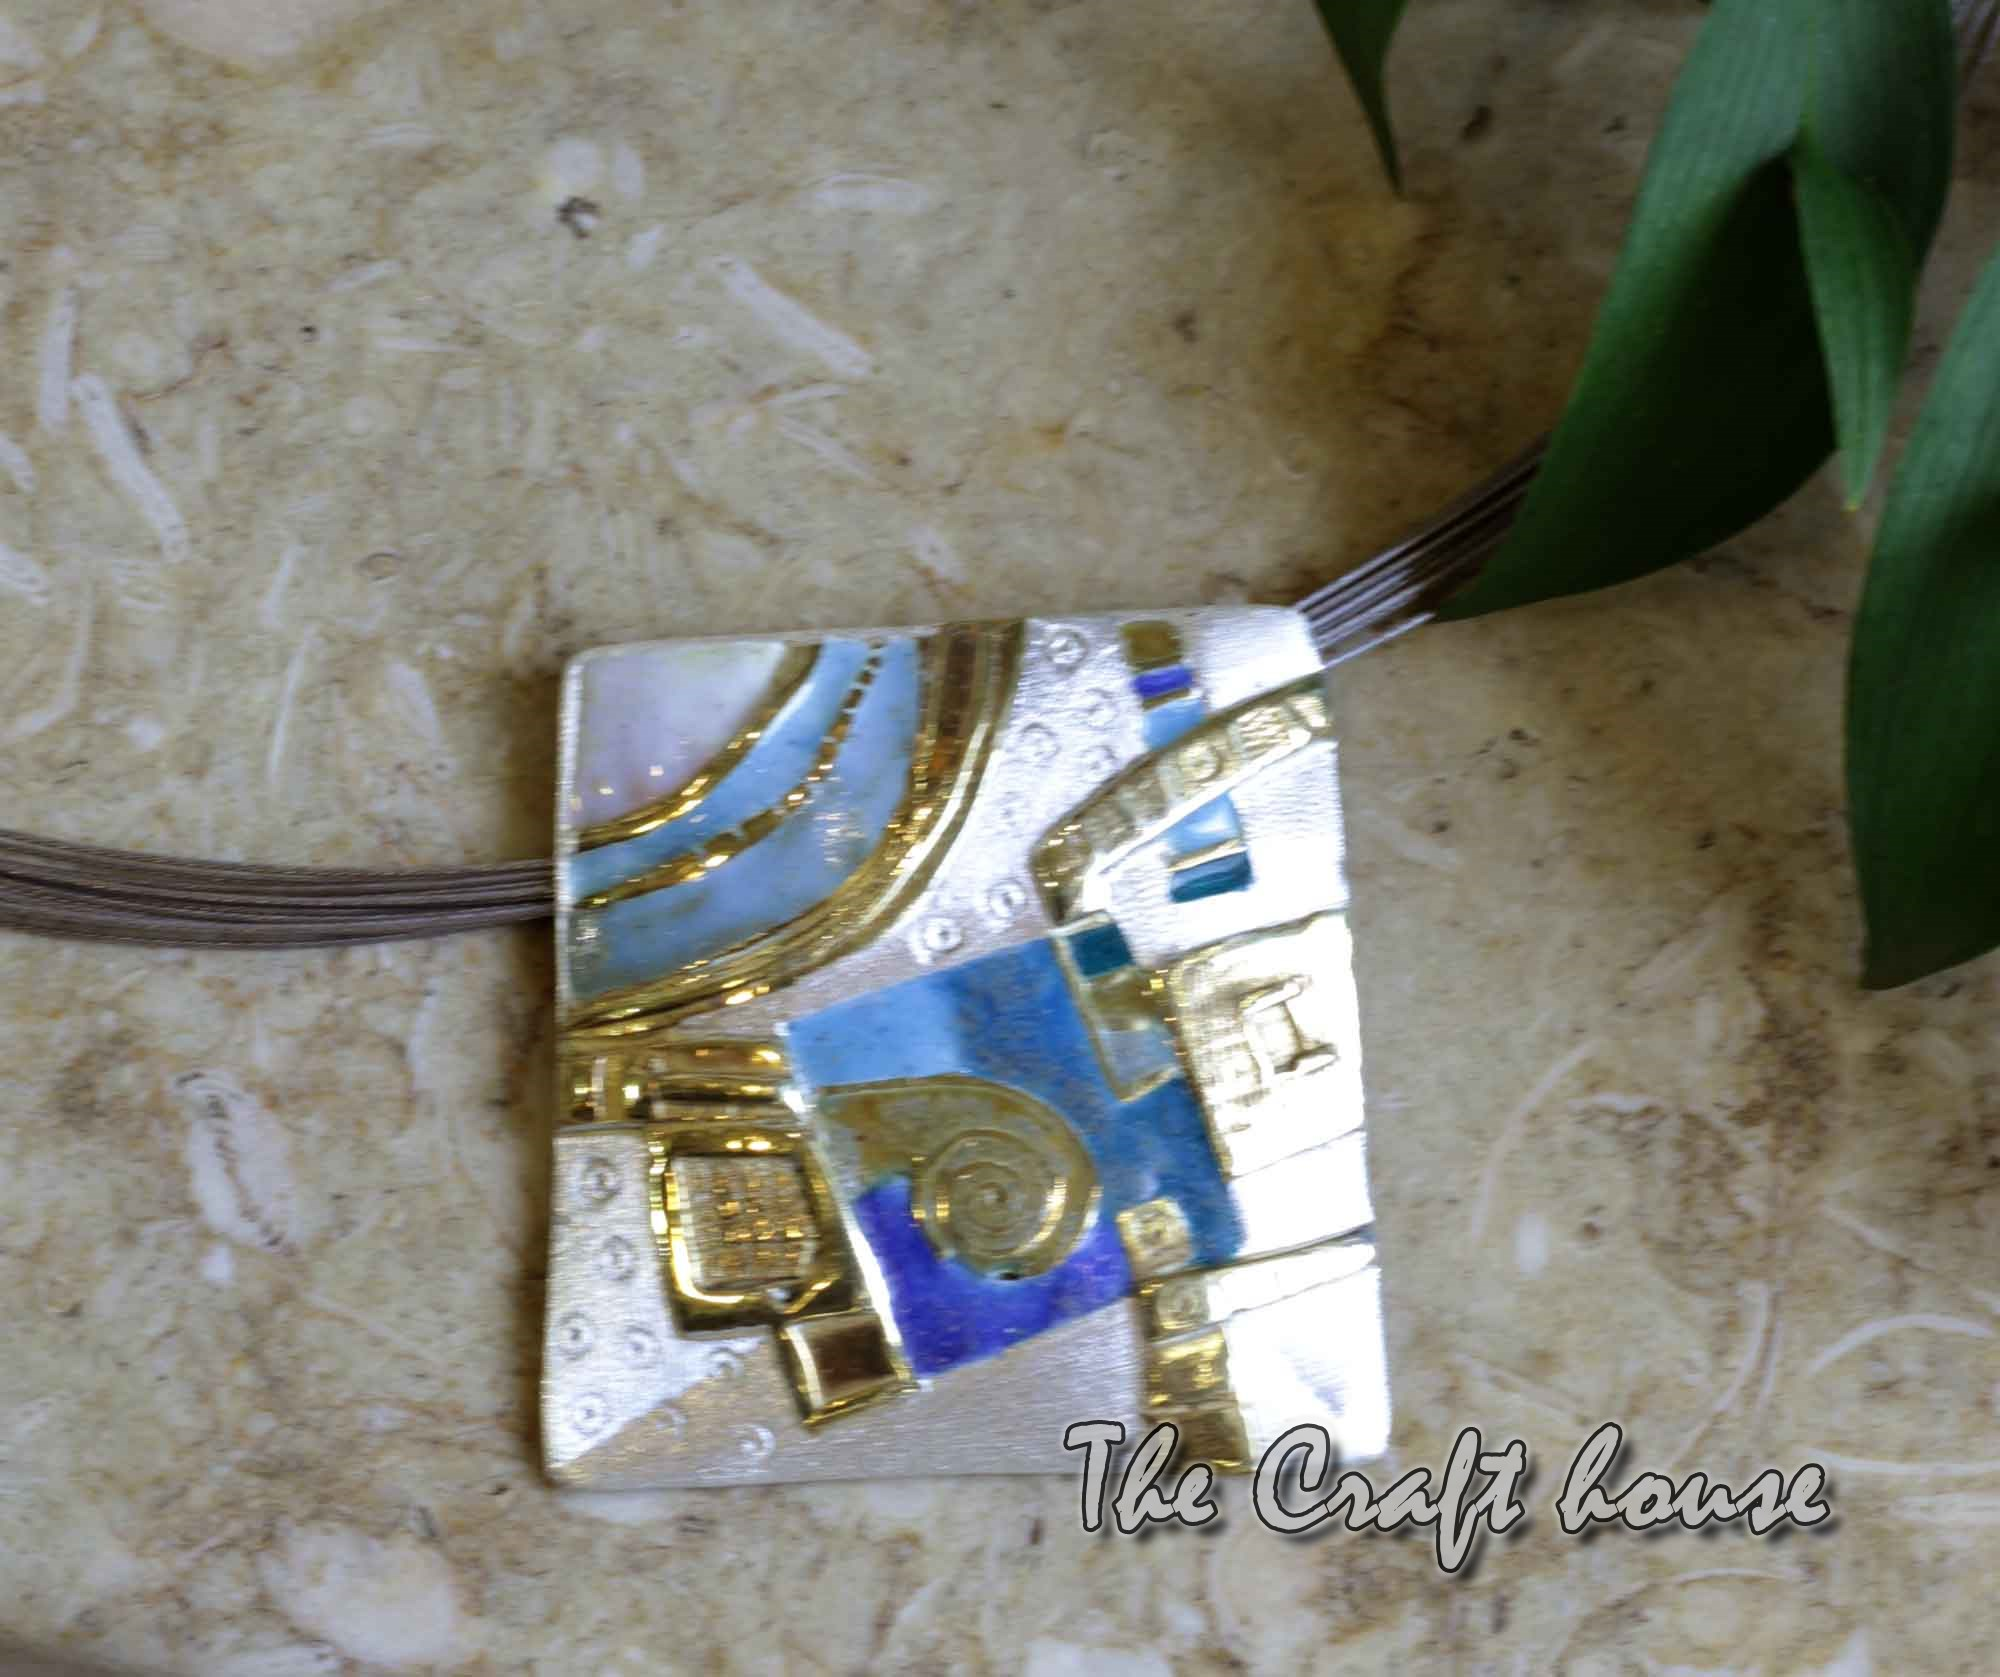 Silver necklace with enamel & gold-plating